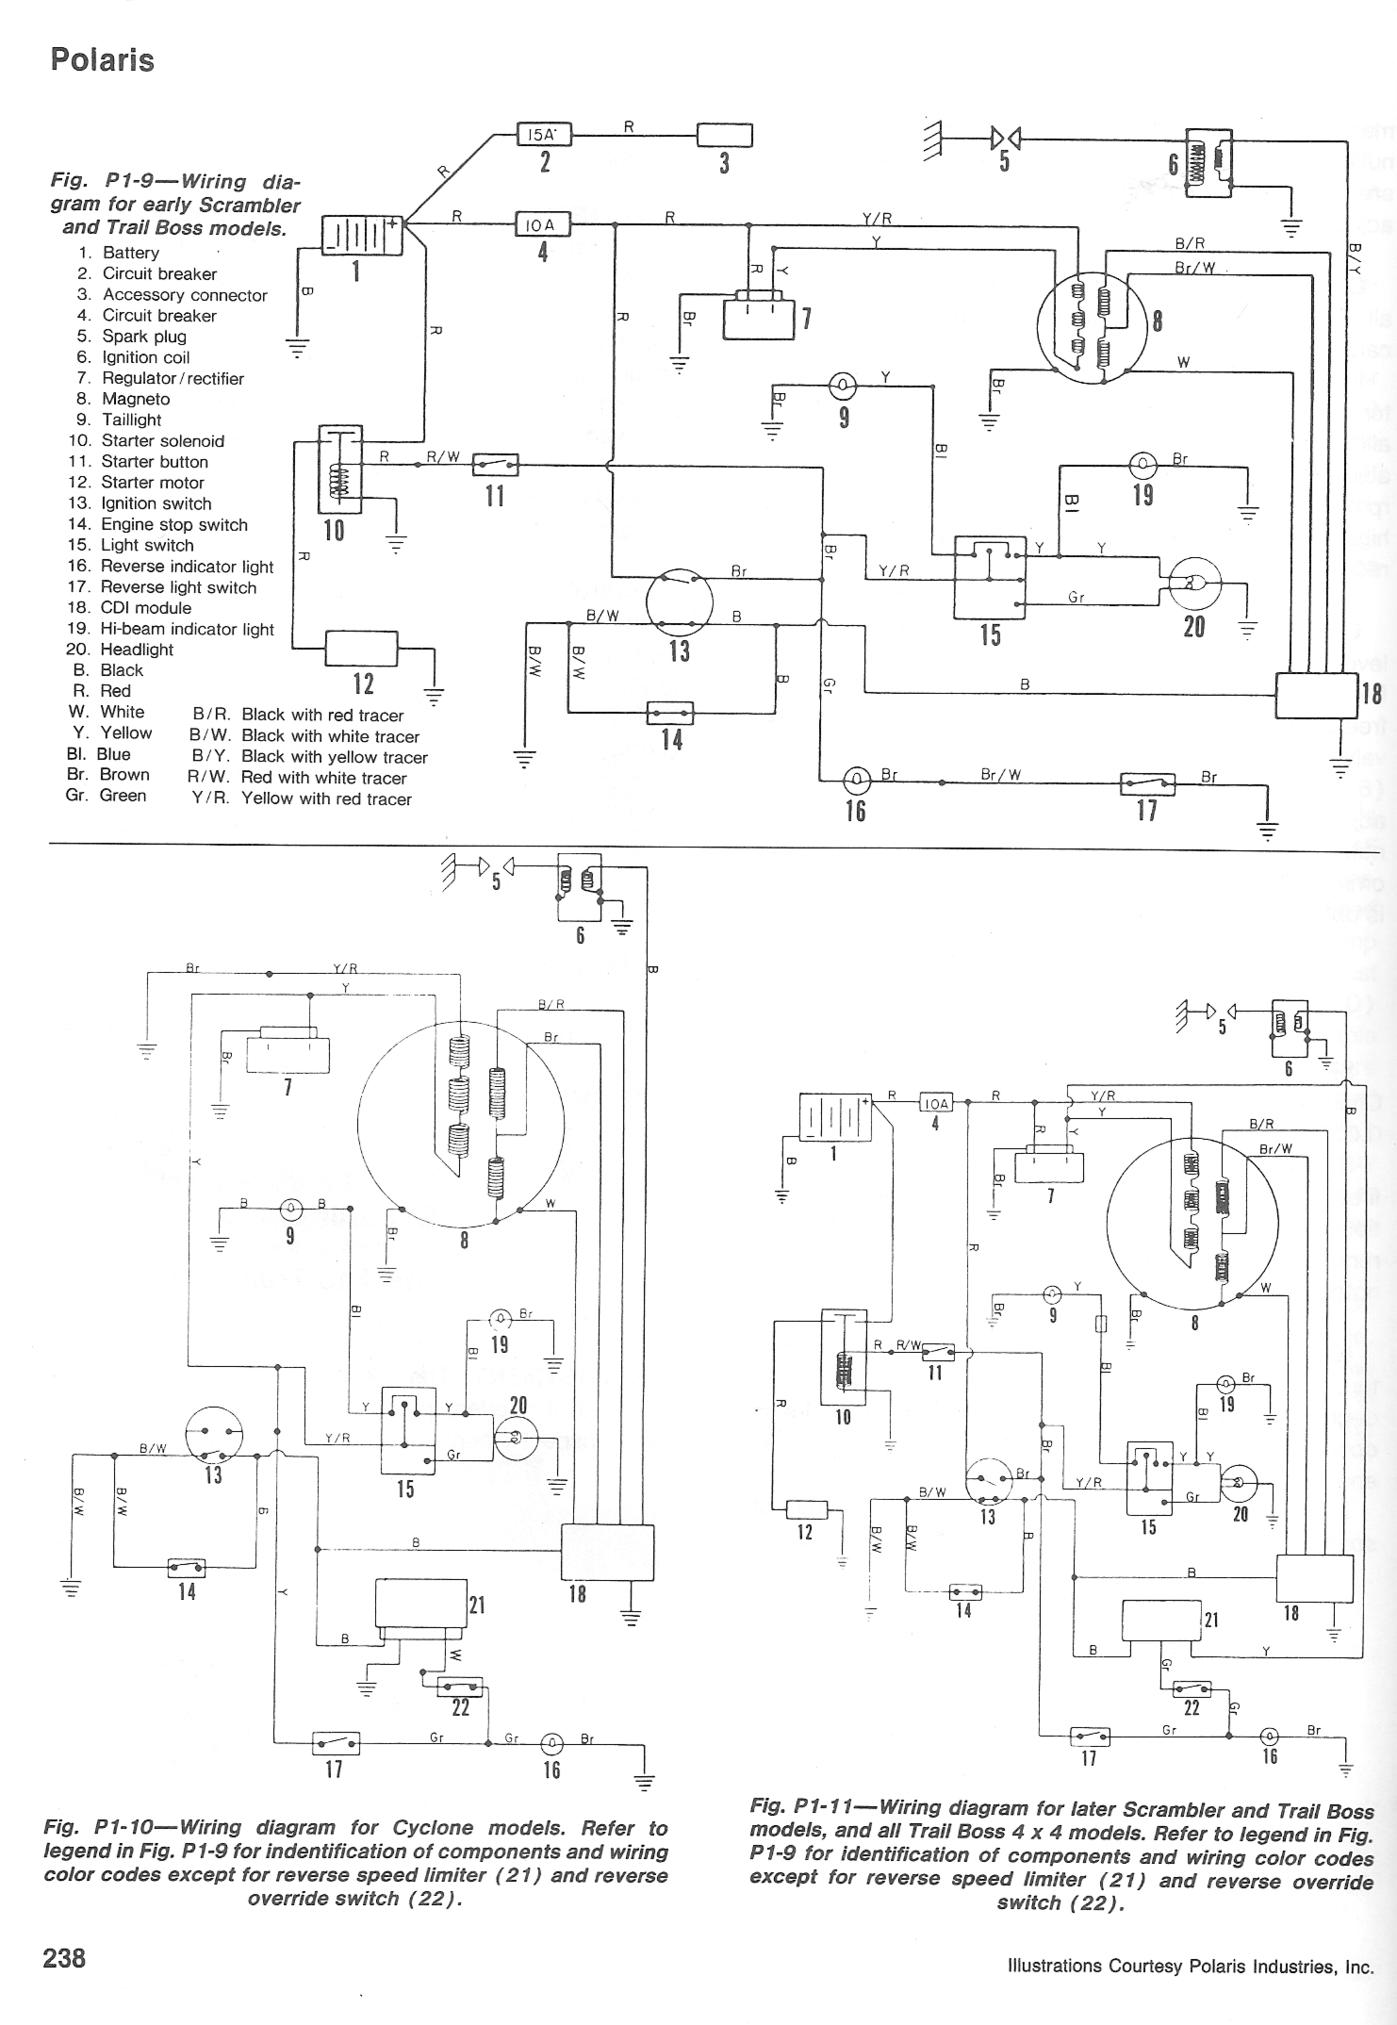 polaris scrambler 500 wiring diagram 99 polaris scrambler 500 wiring diagram